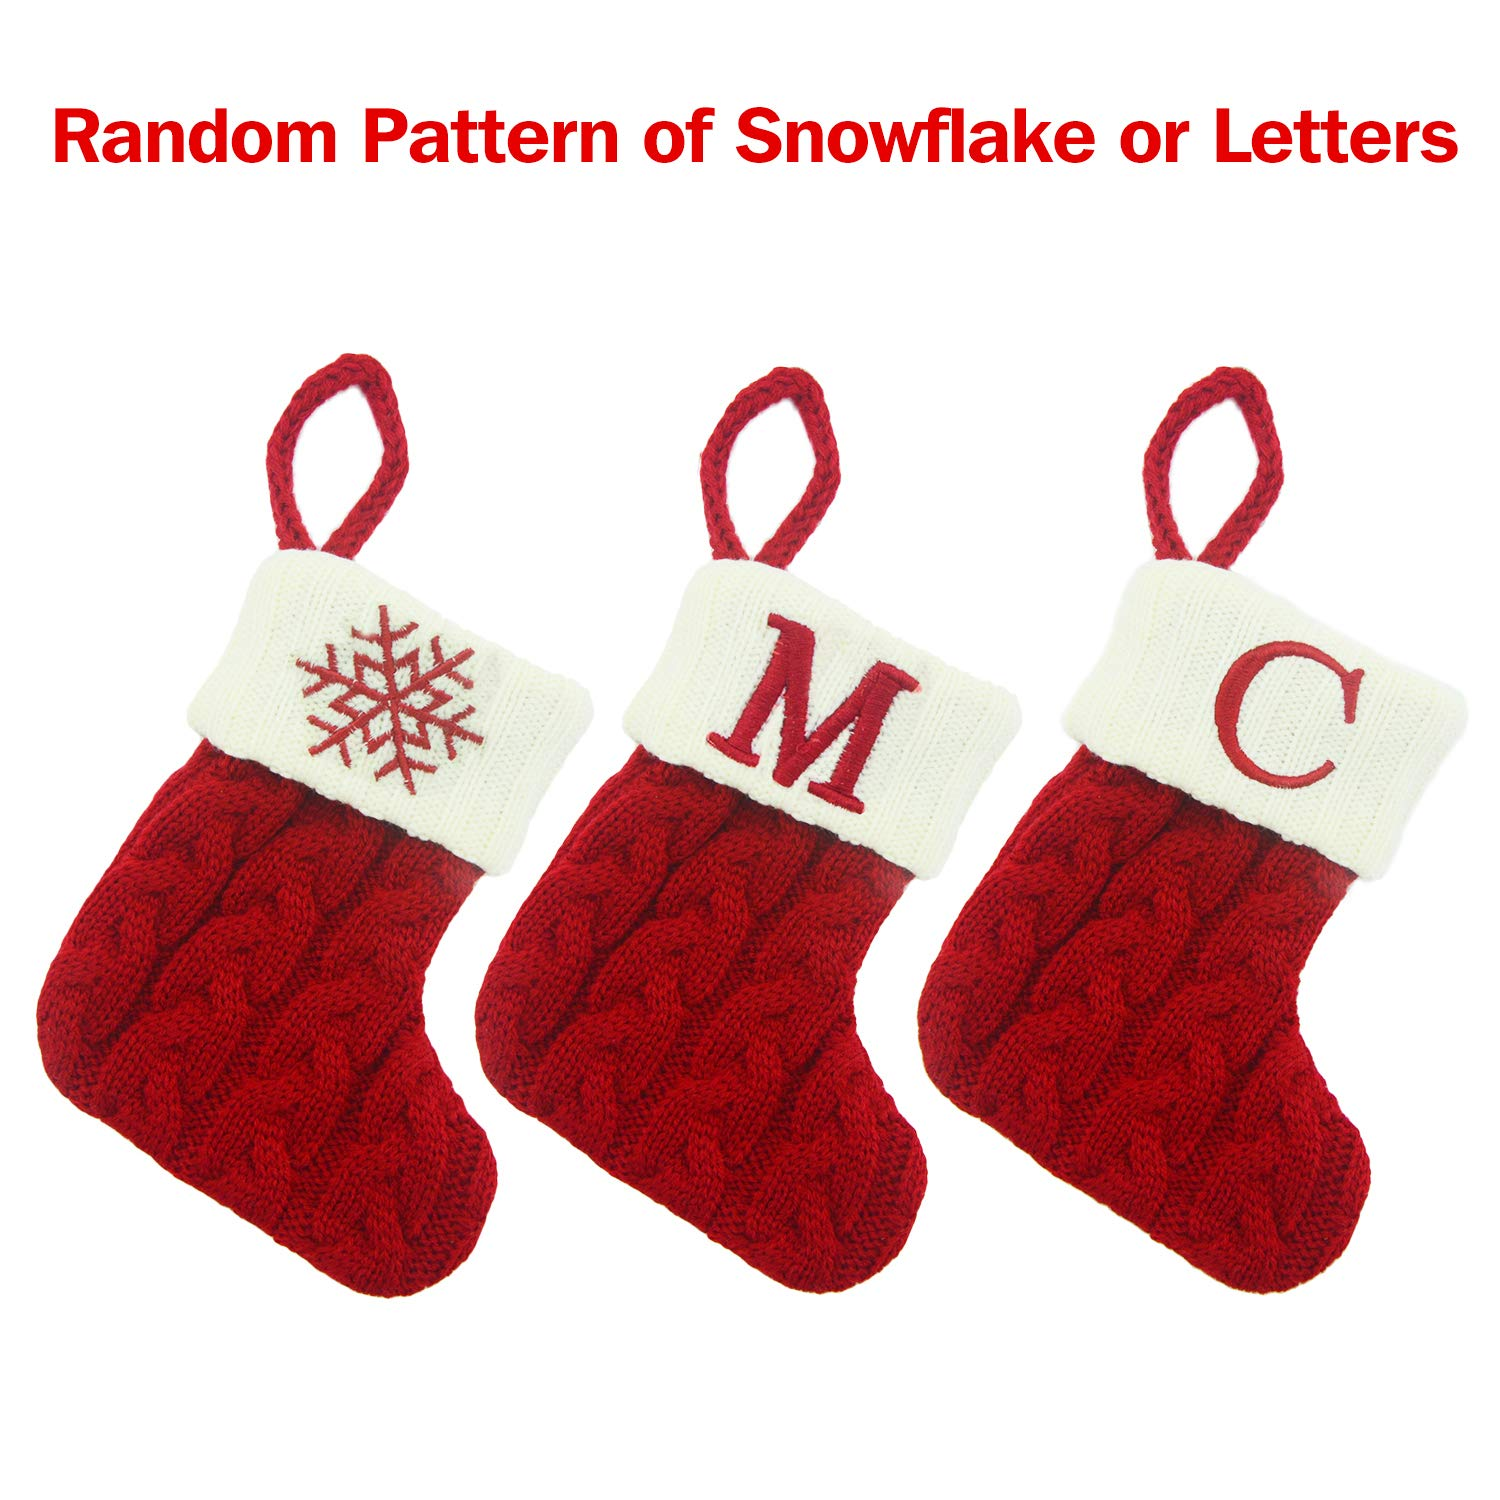 Letter Christmas Stockings.Mini Christmas Stocking 7 Snowflake Letters Random Matching Knitted Candy Bags Holiday Treats Rustic Silverware Holders Trees Hanging Socks